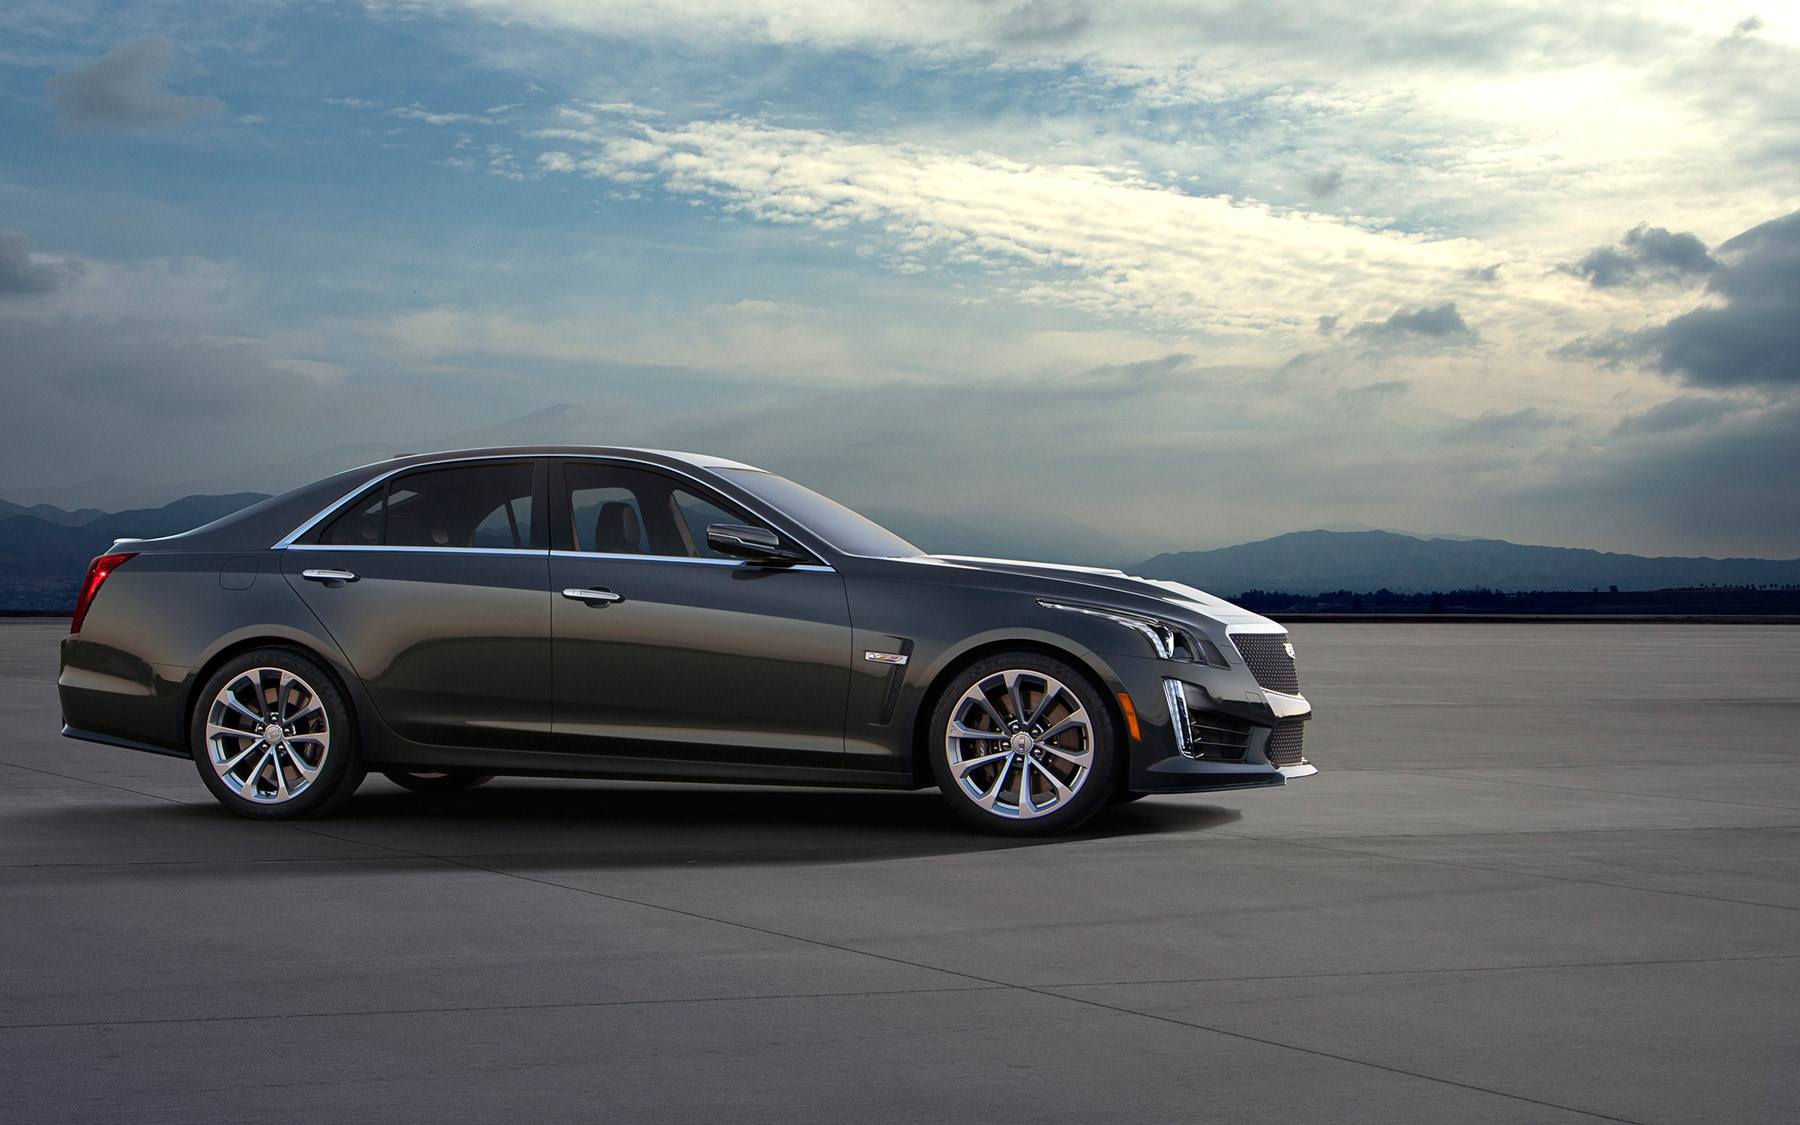 2016 cadillac cts v for sale kingston taylor automall. Black Bedroom Furniture Sets. Home Design Ideas